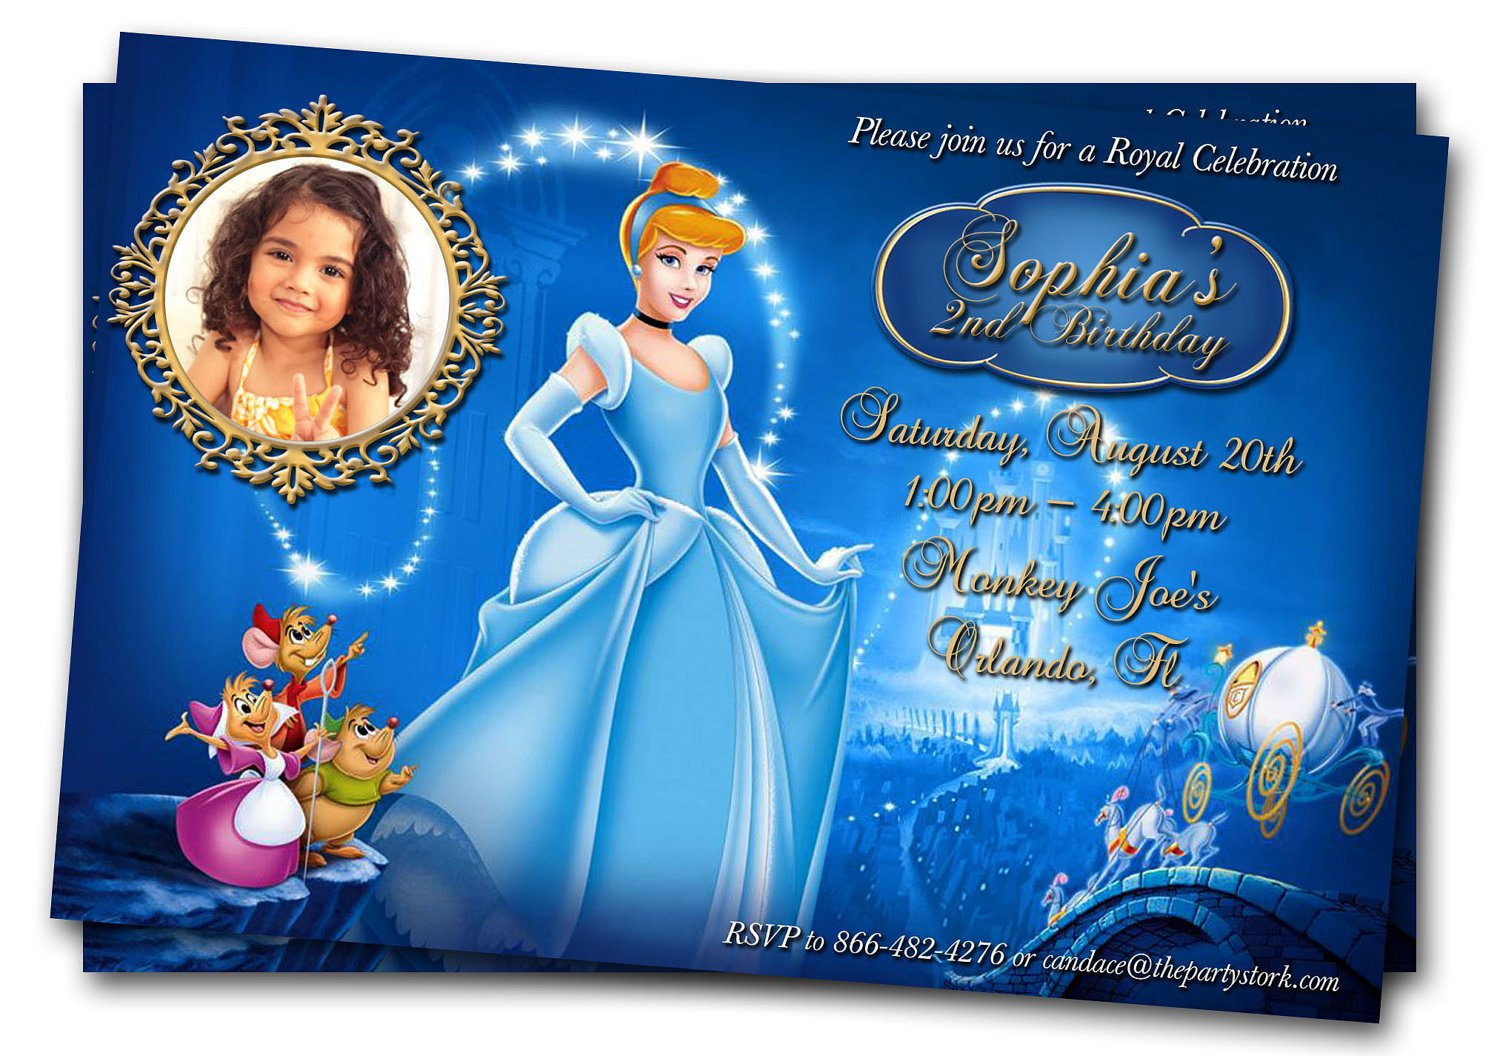 Cindrella Bday Party Invitation